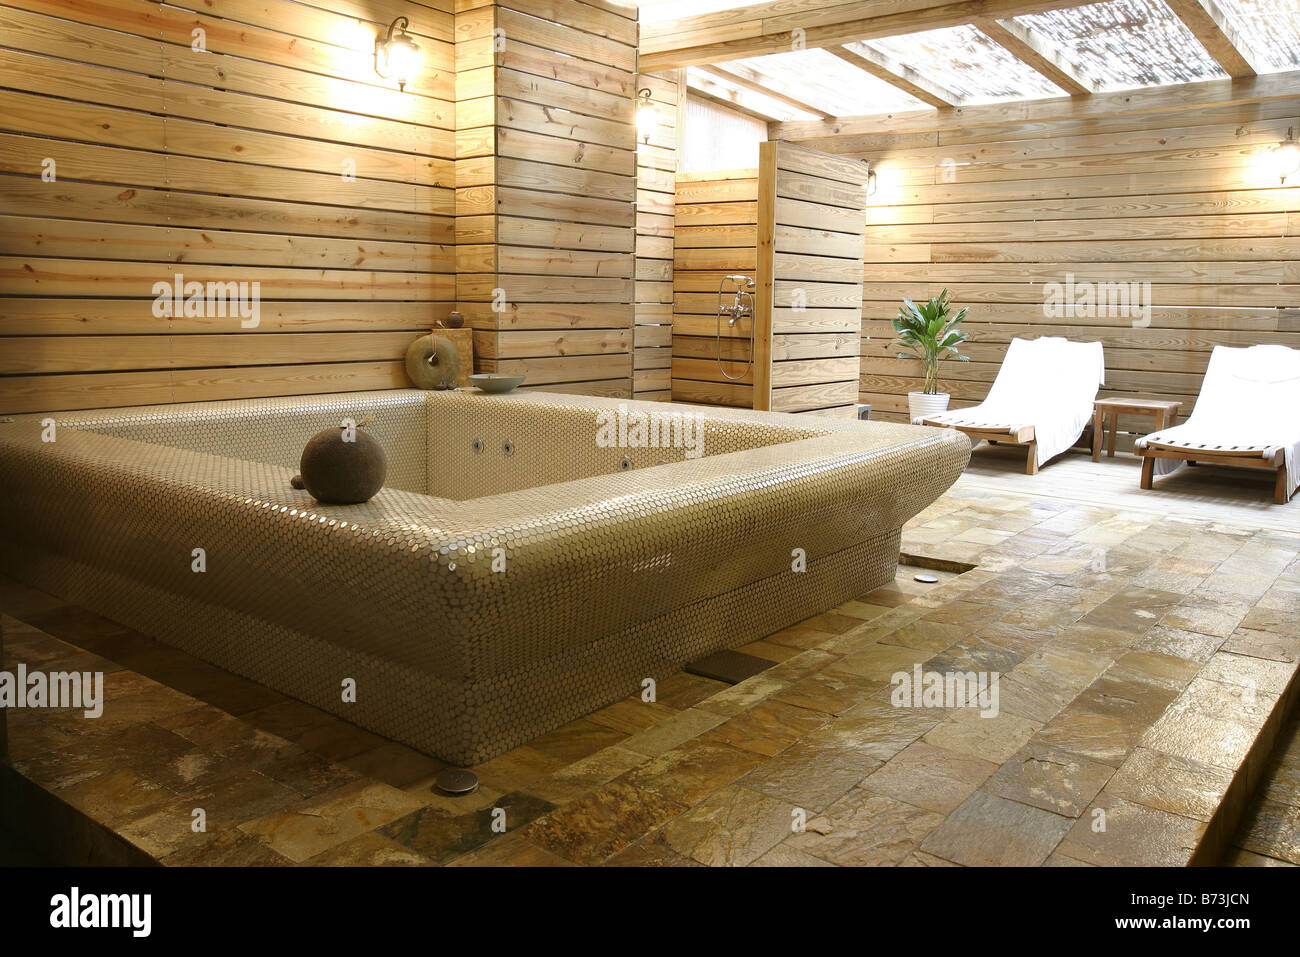 Pot Plants Bathroom Stock Photos & Pot Plants Bathroom Stock Images ...